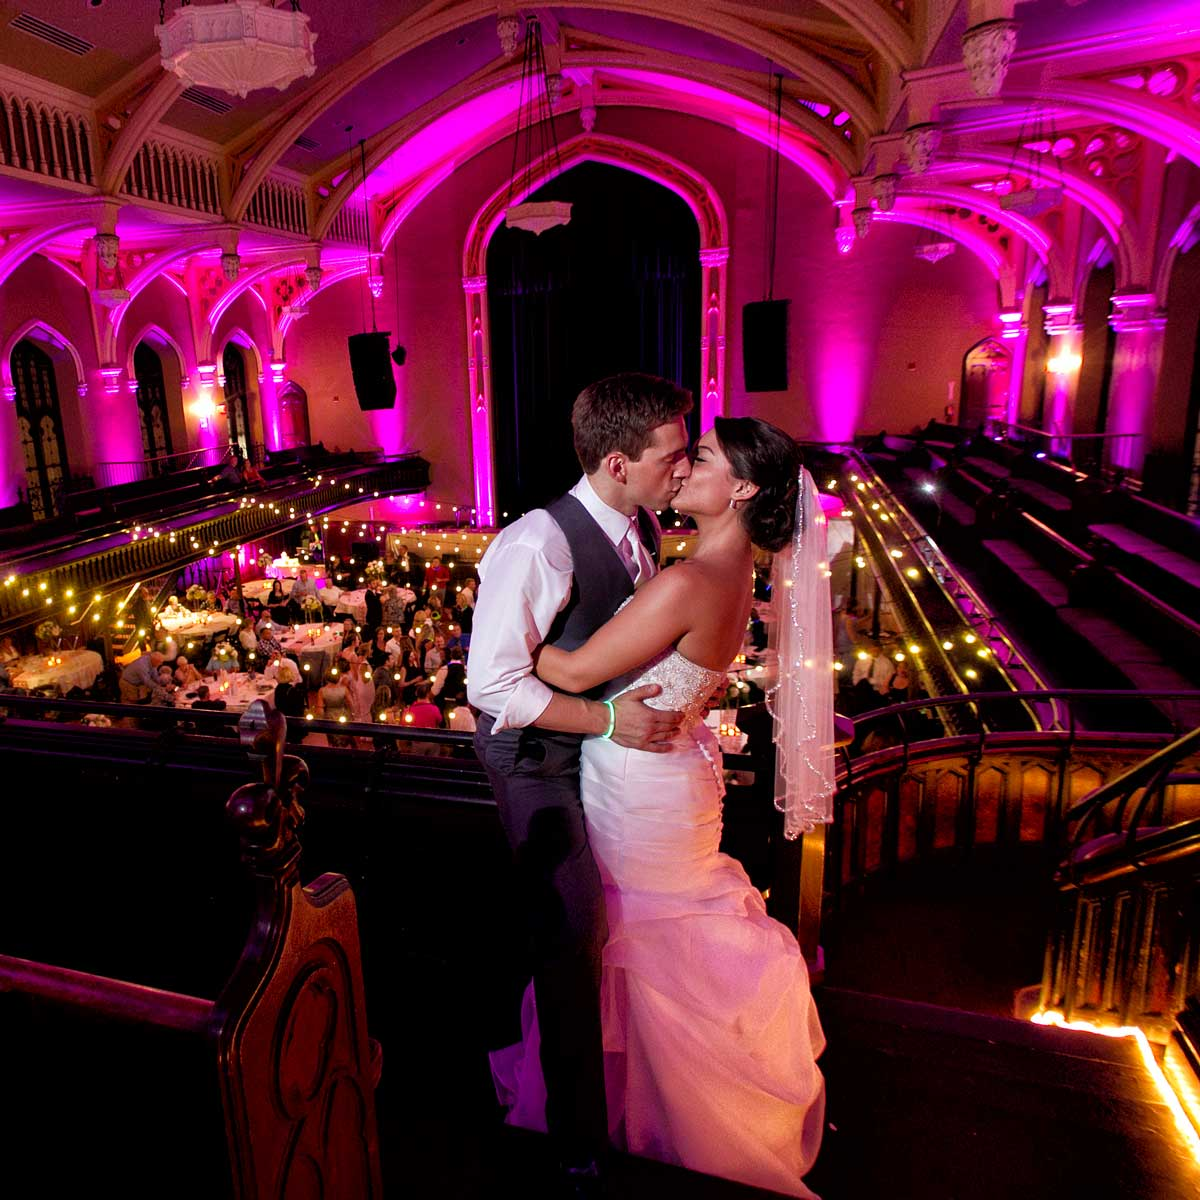 Bride and Groom kiss on the balcony at Statler City with ballroom lit with pink uplighting in the background